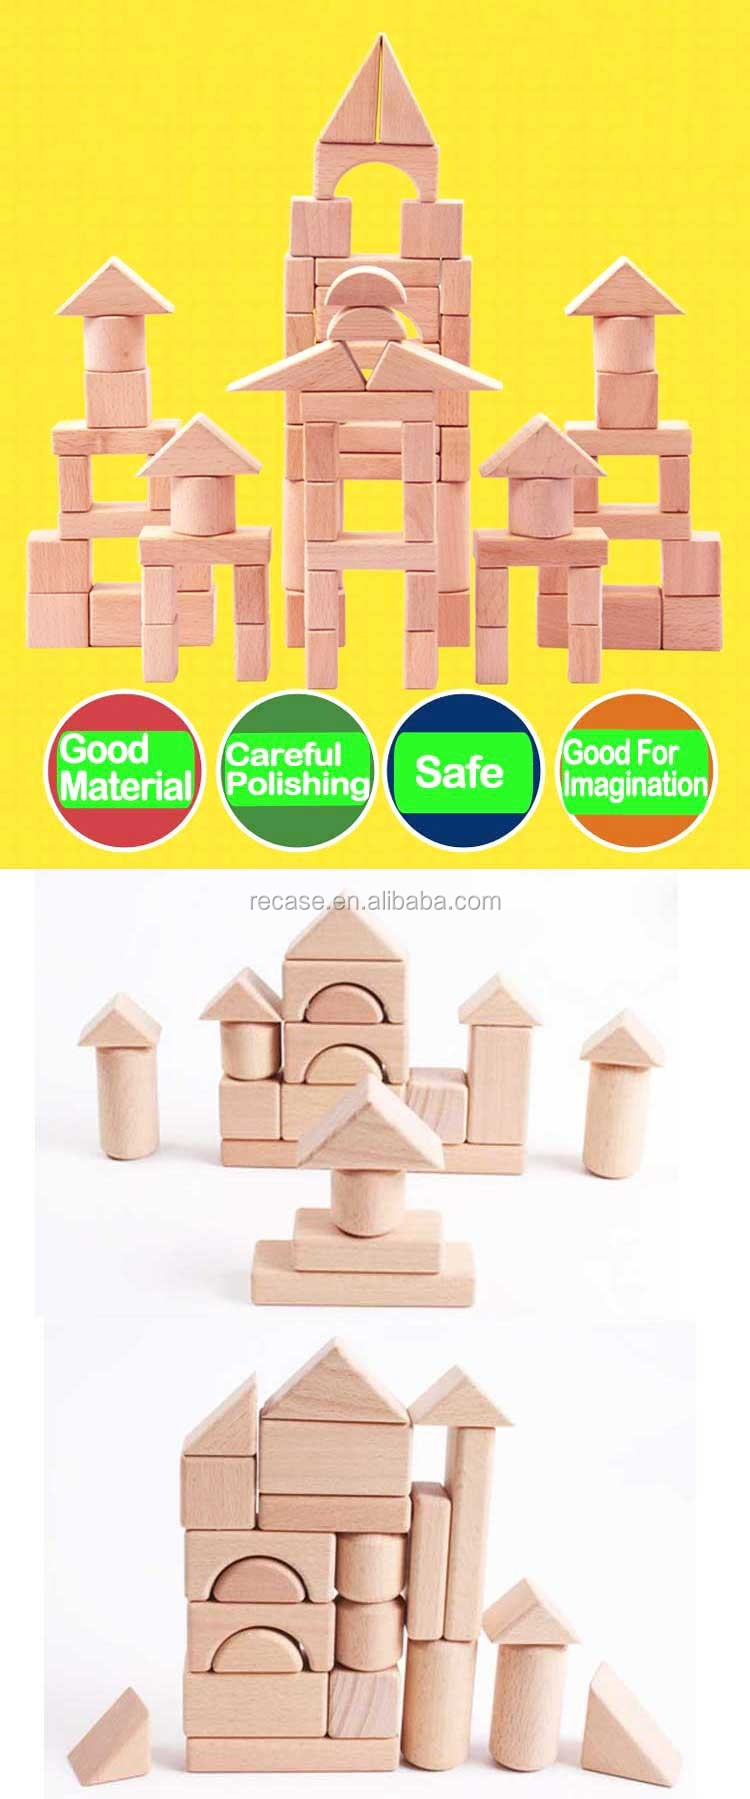 3d Puzzle Diy Toy Geometry Educational Brain Puzzles